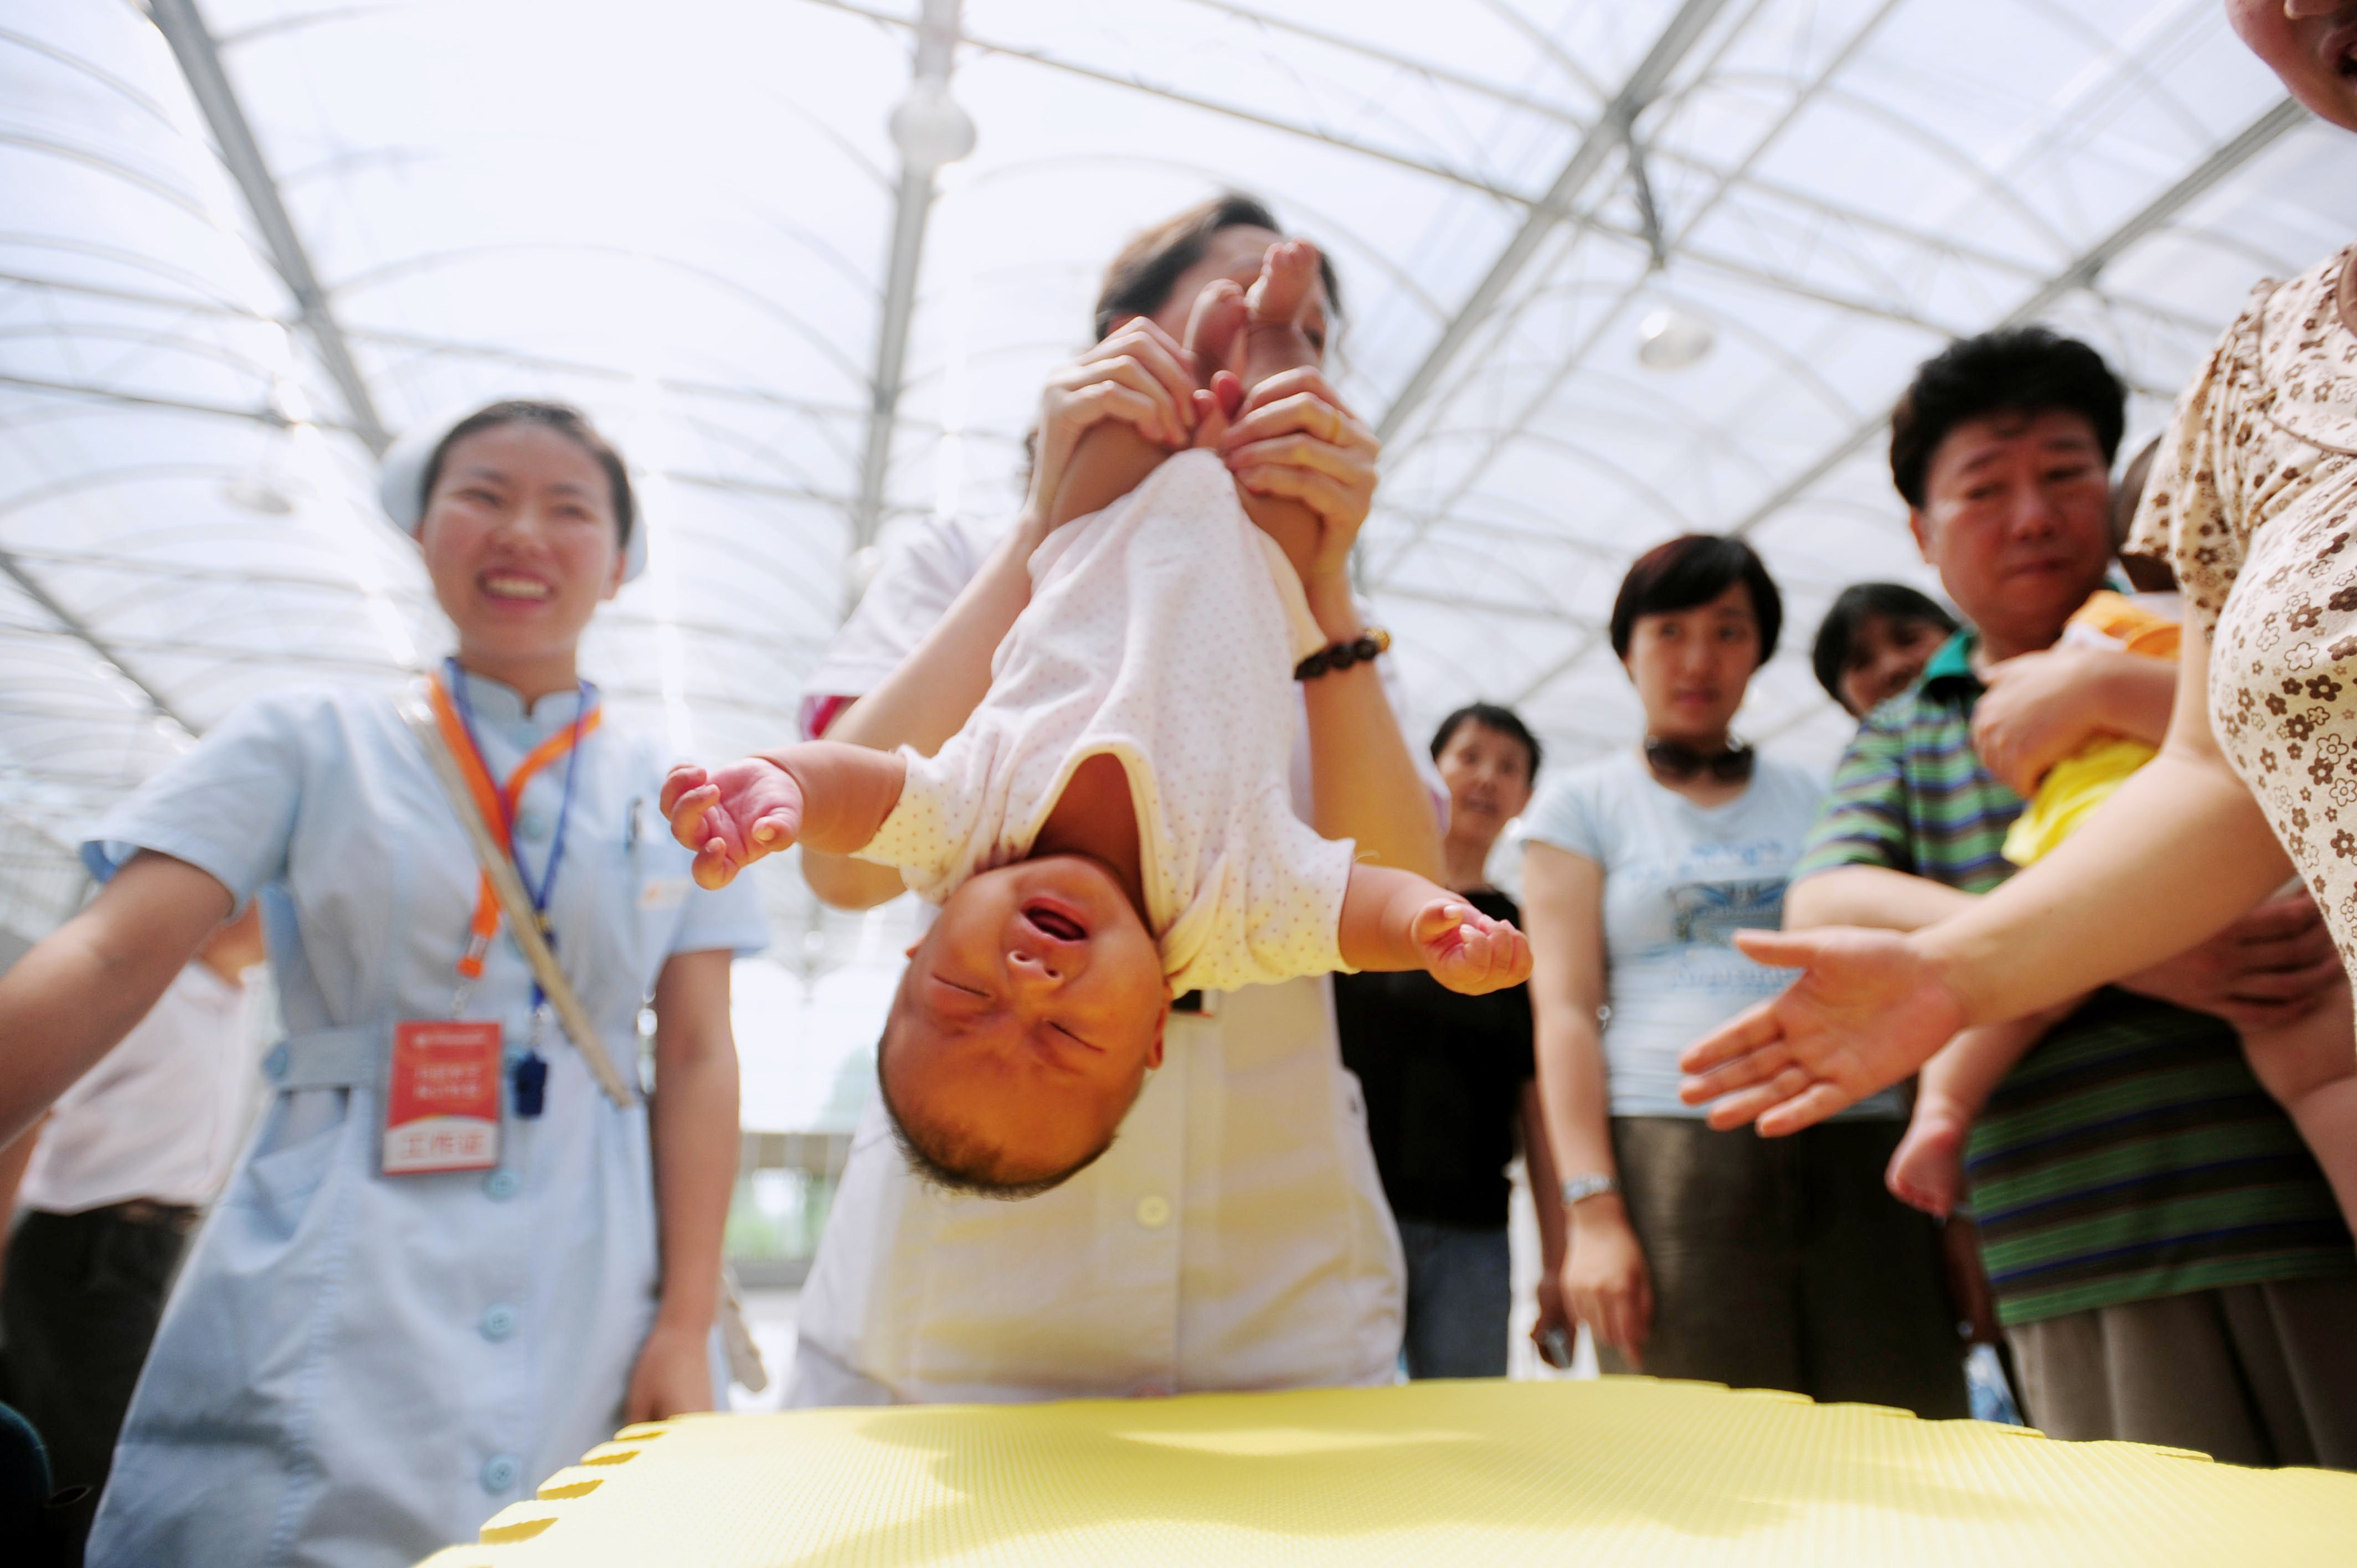 A doctor shows a group of Chinese parents how to help their babies exercise as they take part in an activity to celebrate the upcoming International Children's Day, in Beijing on May 31, 2010. The Chinese tradition of grandparents helping young couples with their kids still exists but is fraught with difficulties, from conflicts over how to raise the children to the fading strength of the elder generation. CHINA OUT AFP PHOTO